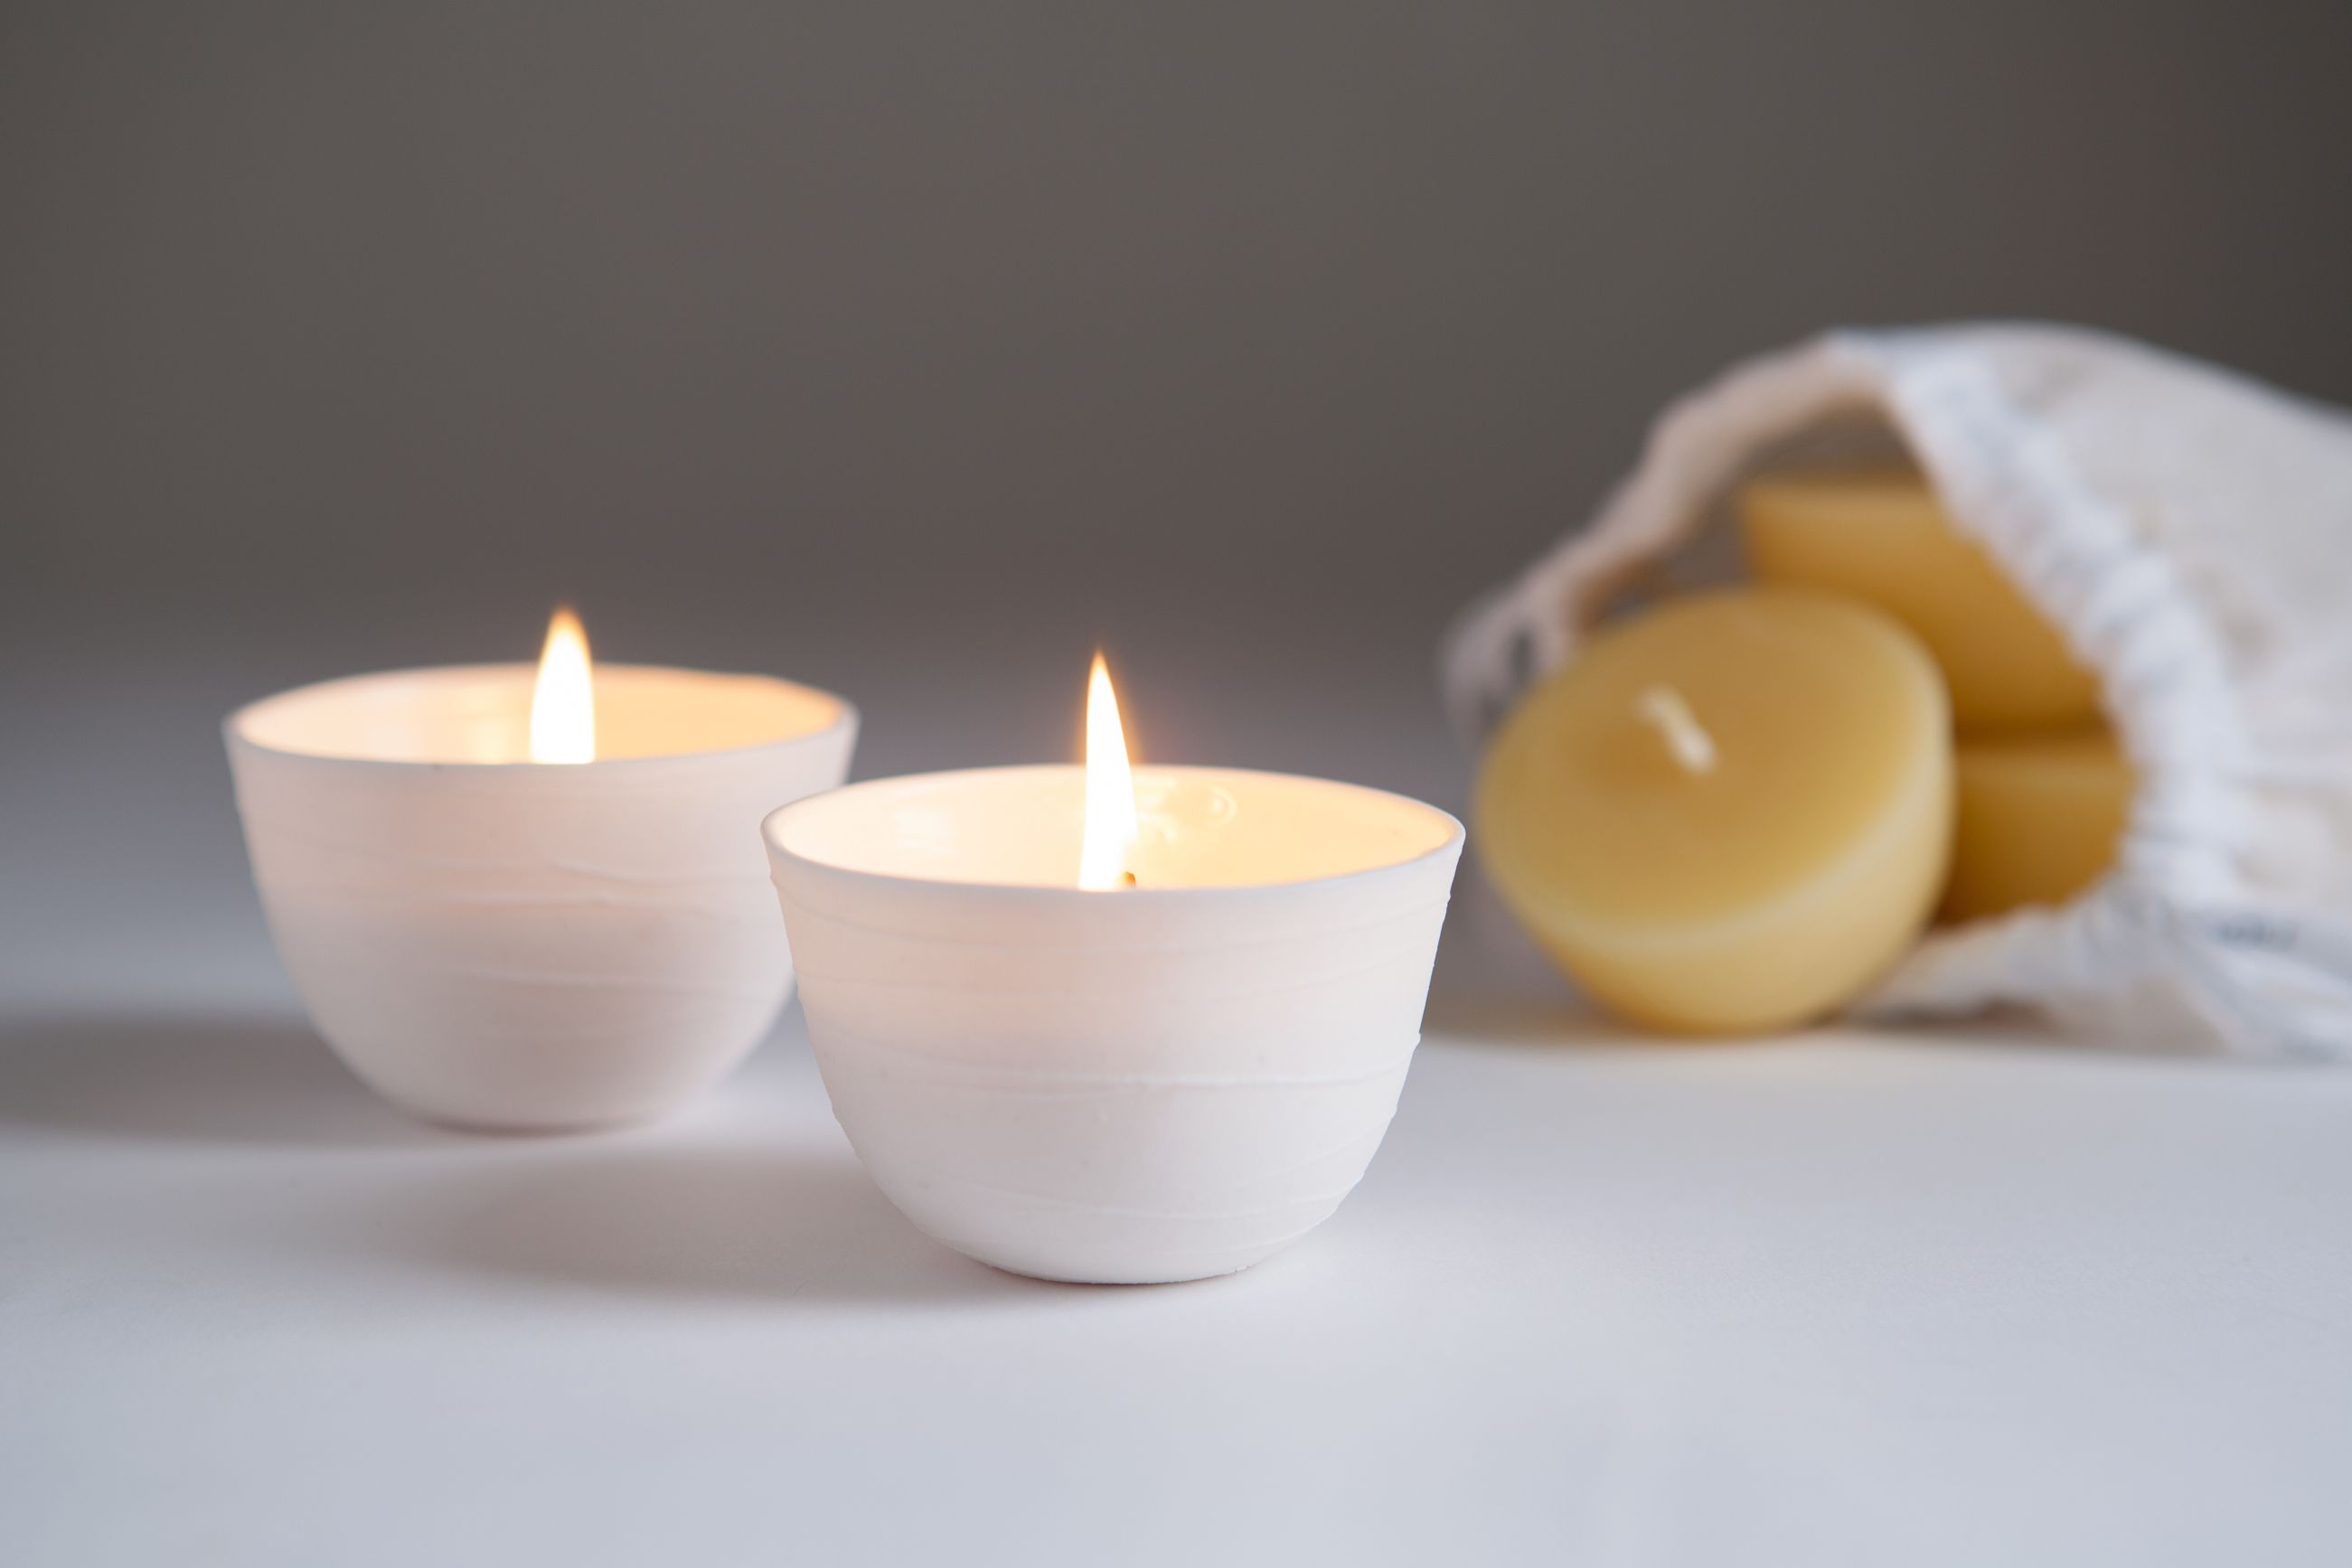 of variety explore pin introducing lightbox s light and wonderful beeswax more candles new this lights northern